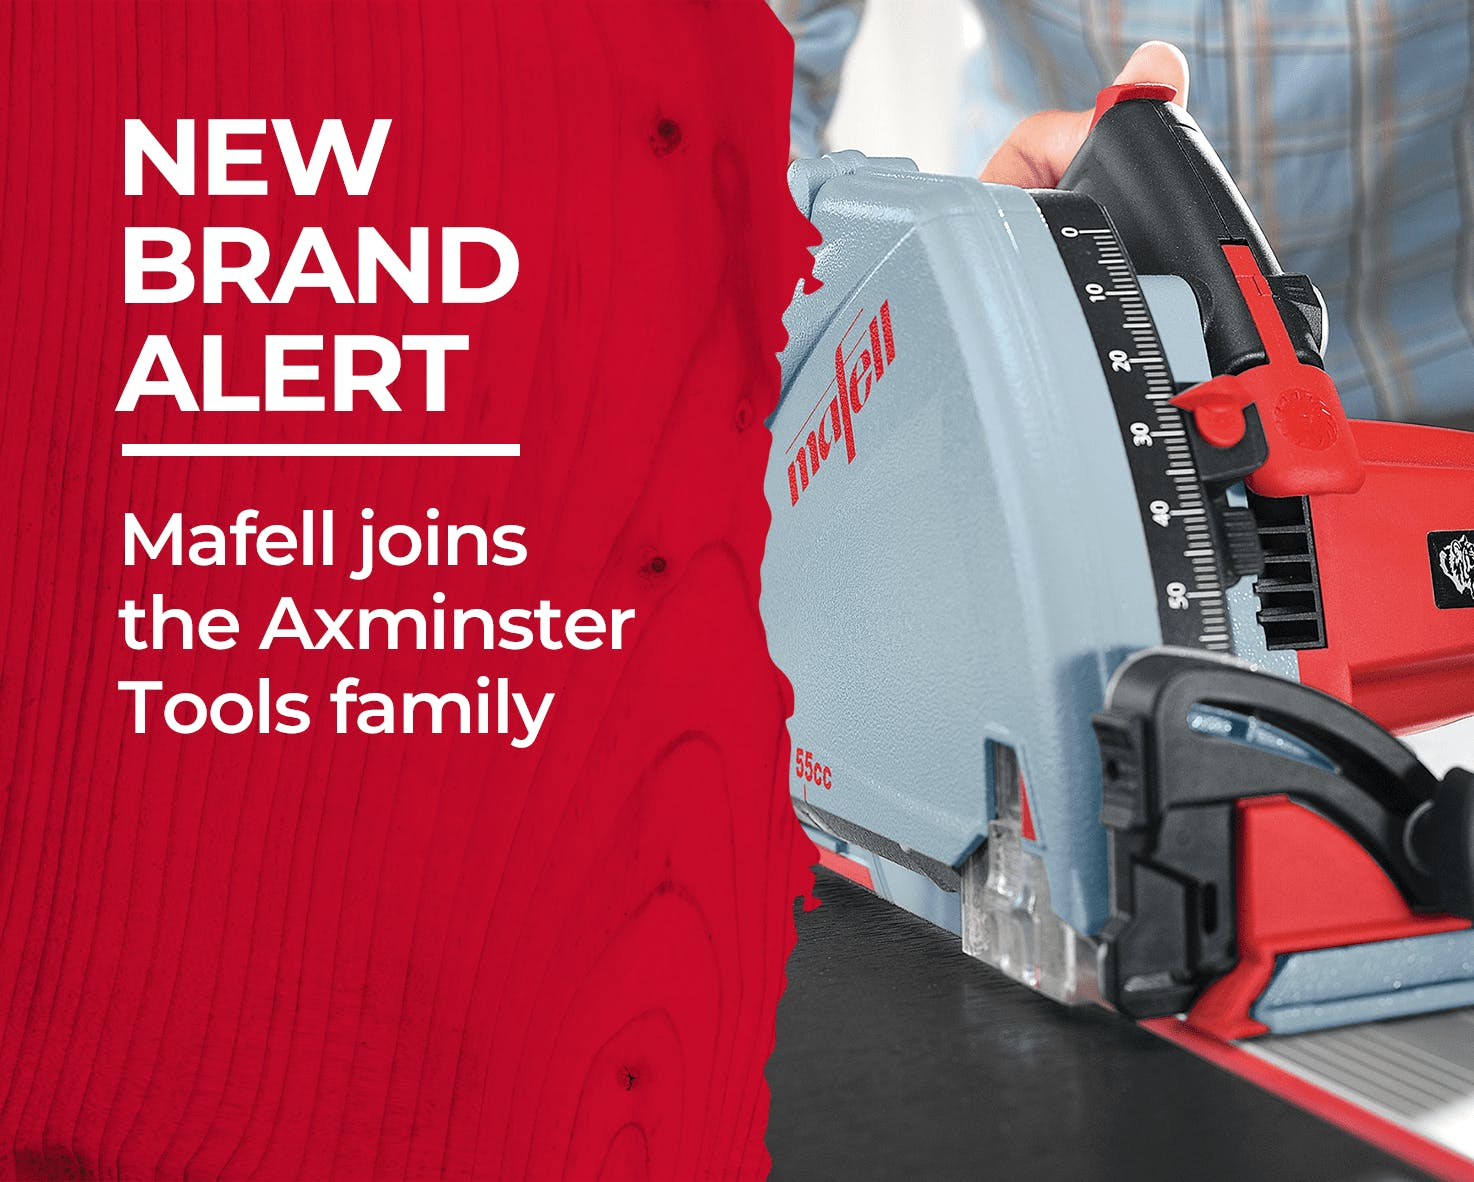 New Mafell power tools